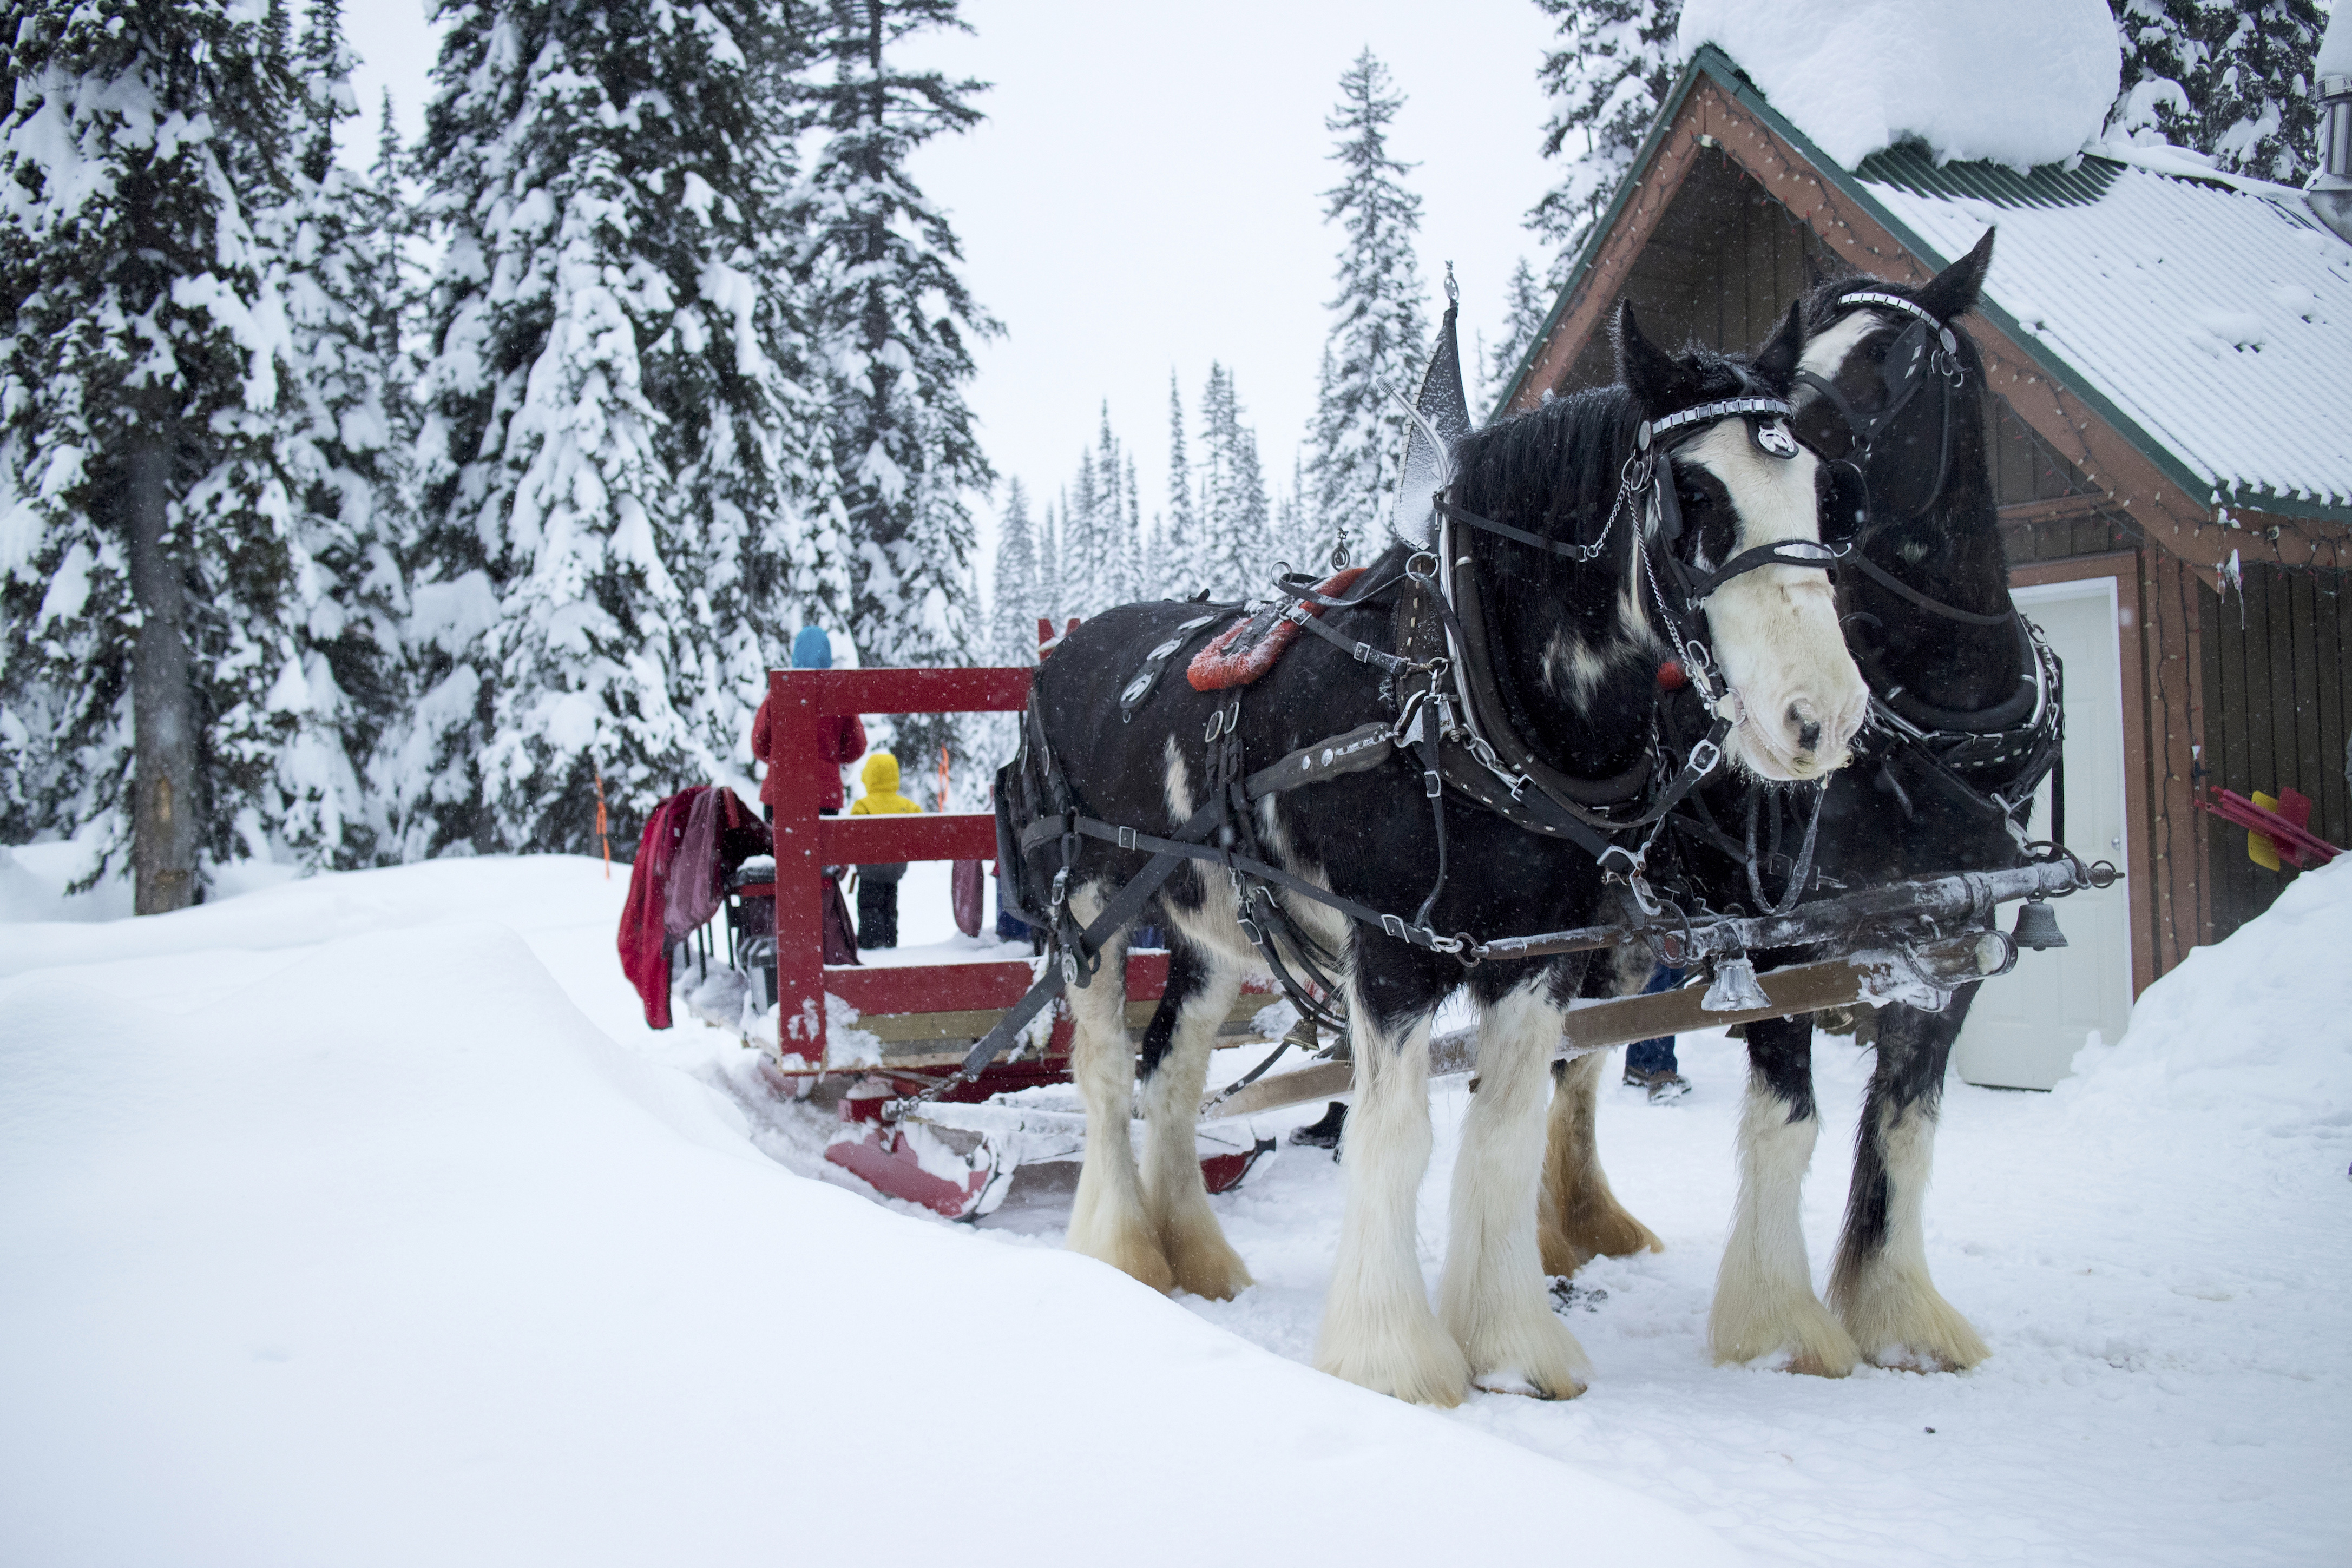 Sleigh day